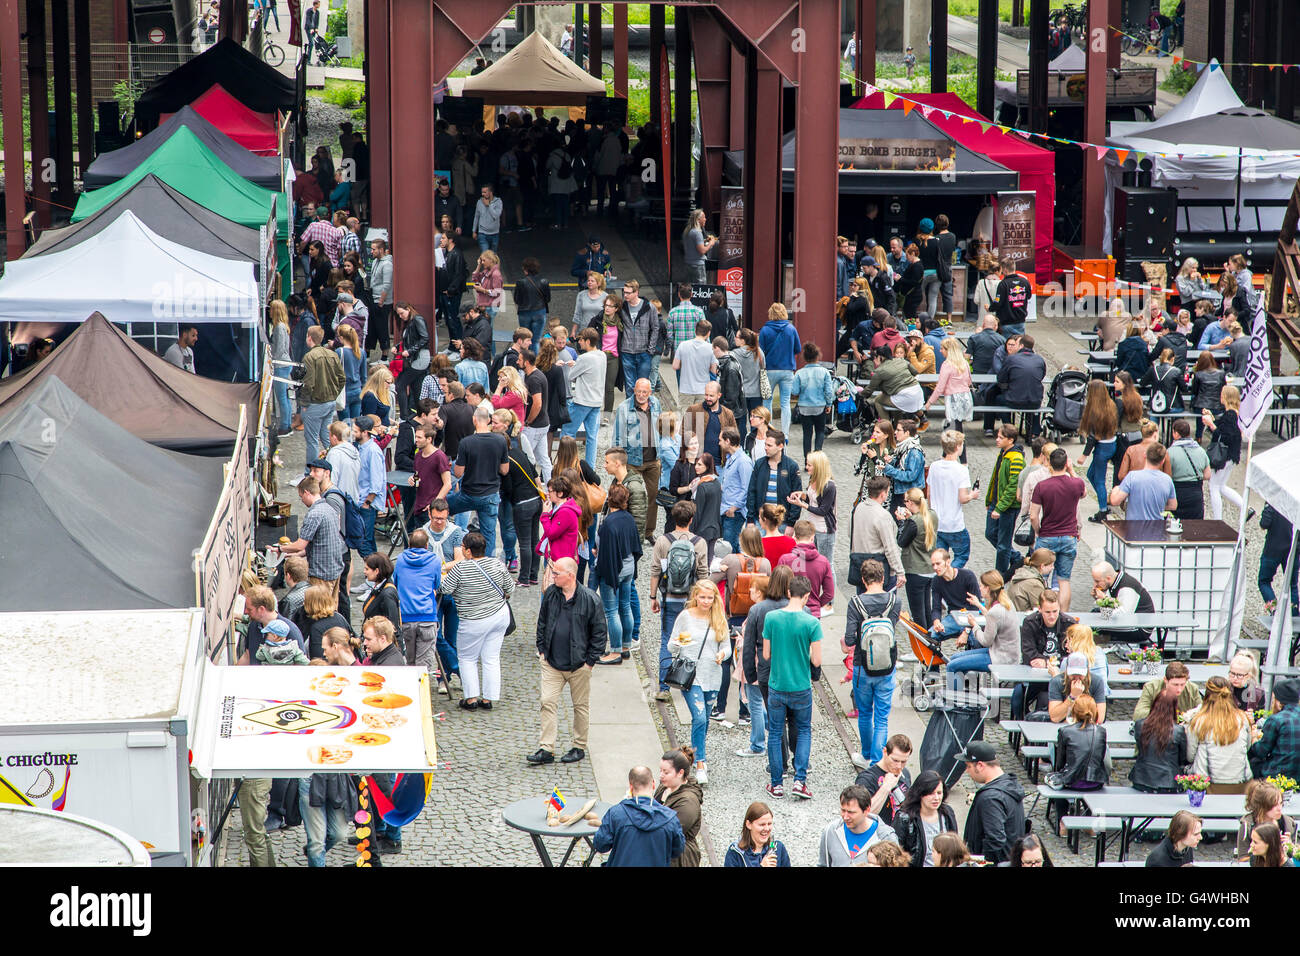 food festival food truck festival at zeche zollverein essen stock photo royalty free image. Black Bedroom Furniture Sets. Home Design Ideas